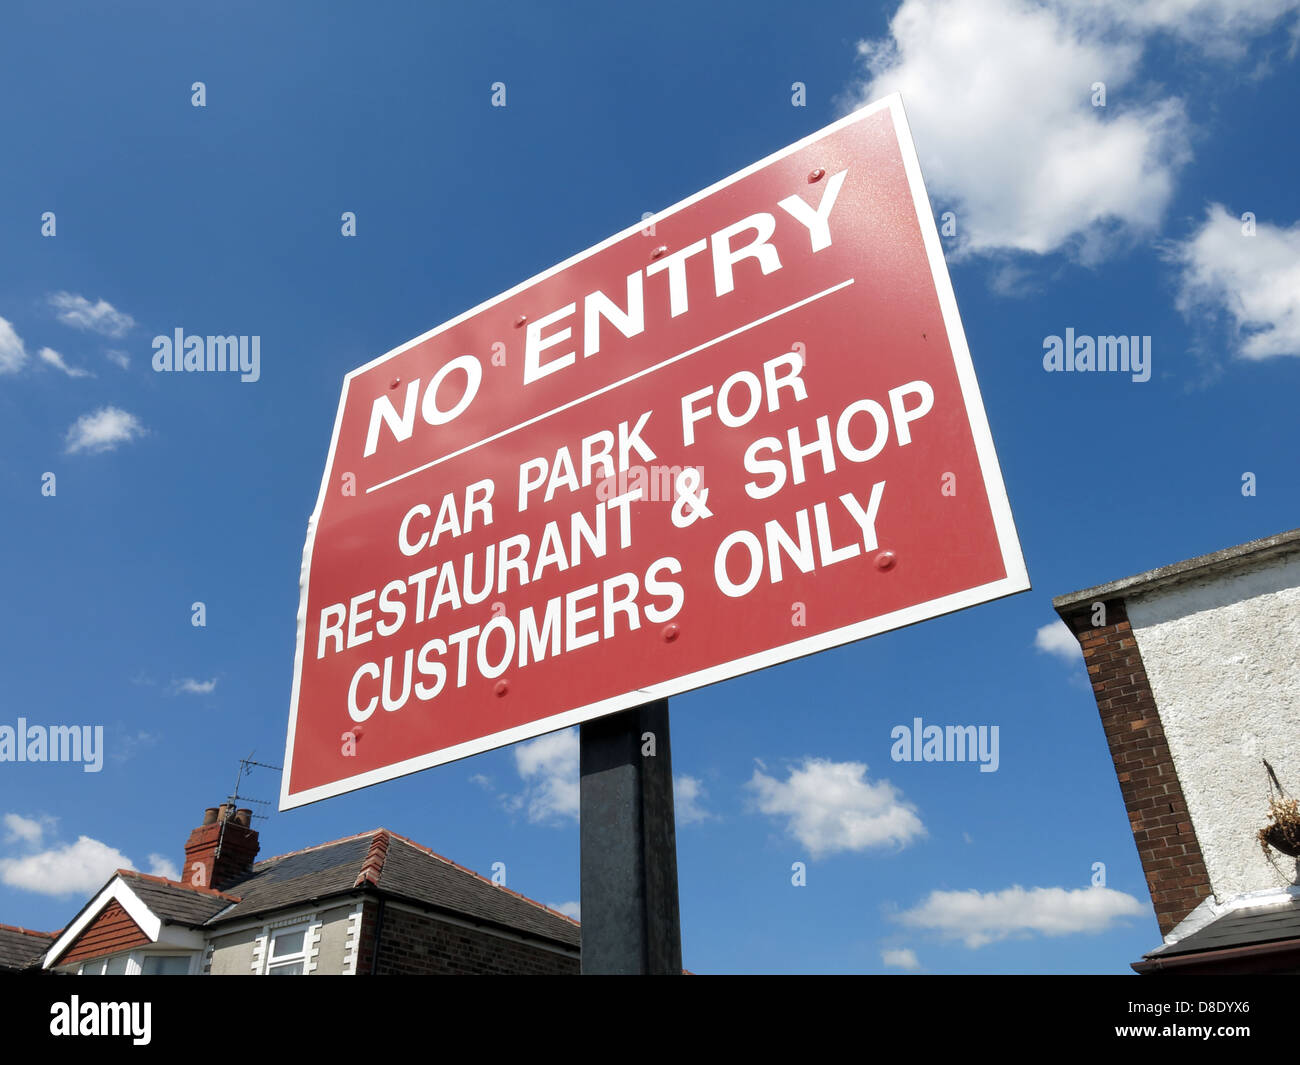 Red No entry Sign preventing parking to restrict to just hop and restaurant customers only - Stock Image